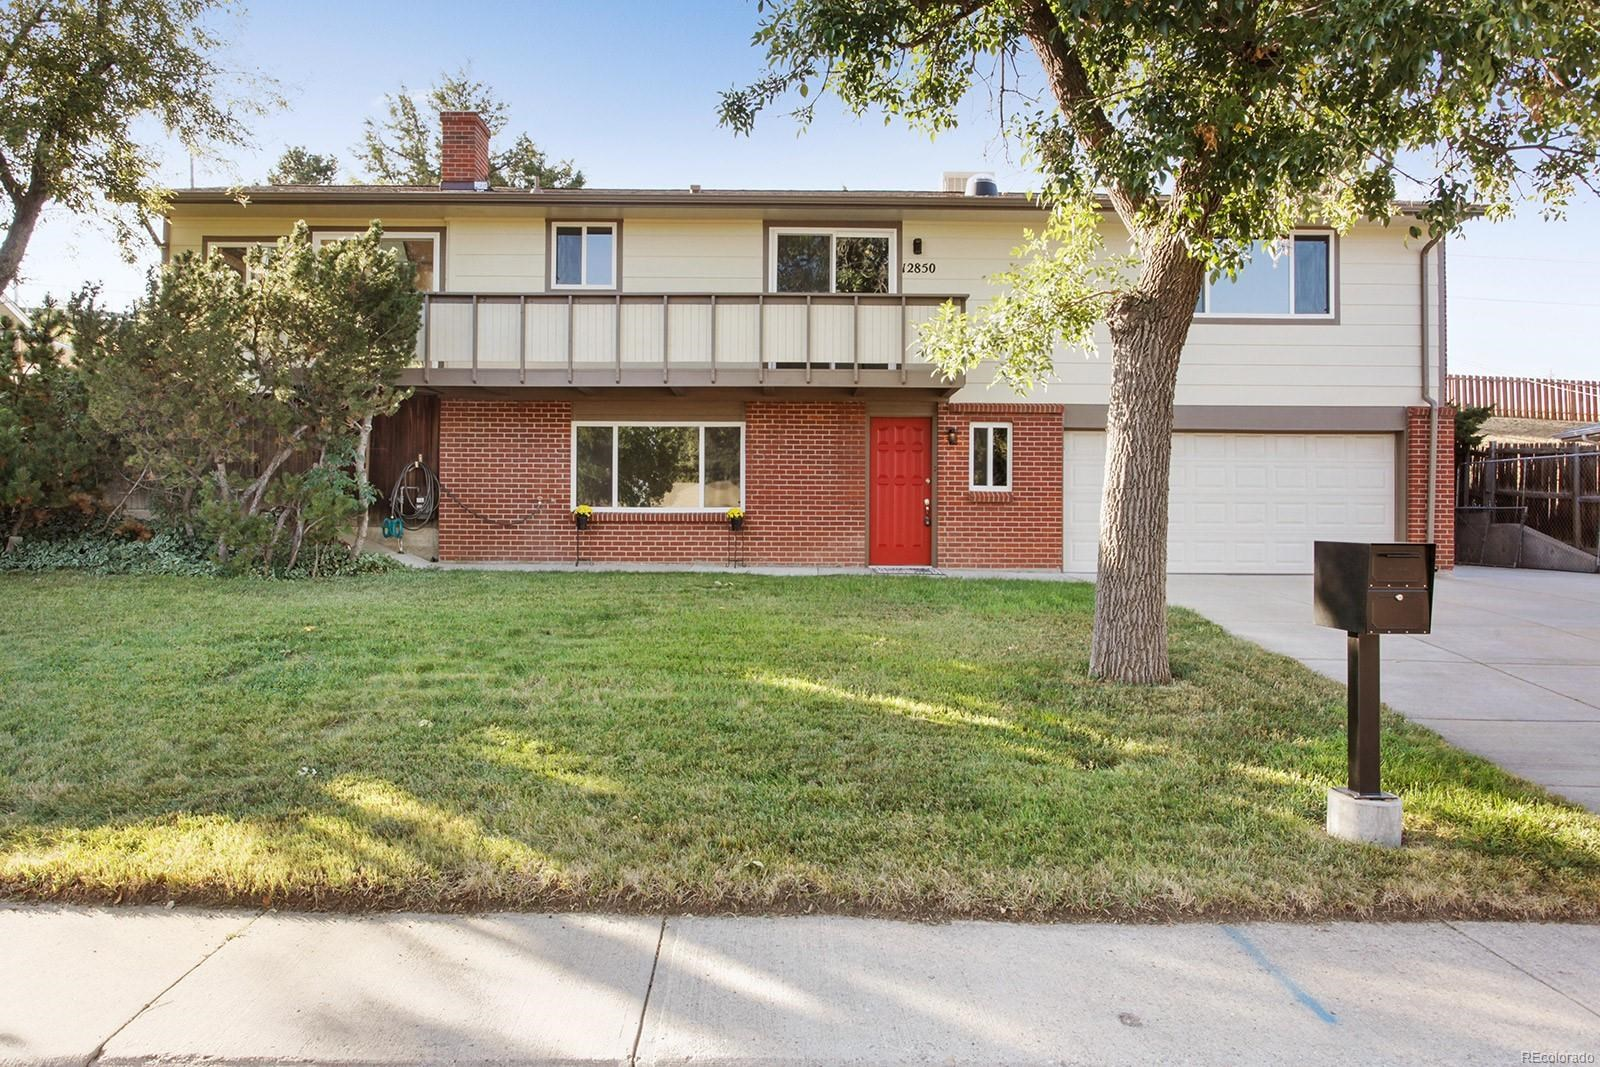 MLS# 5056958 - 32 - 12850 W 6th Place, Lakewood, CO 80401